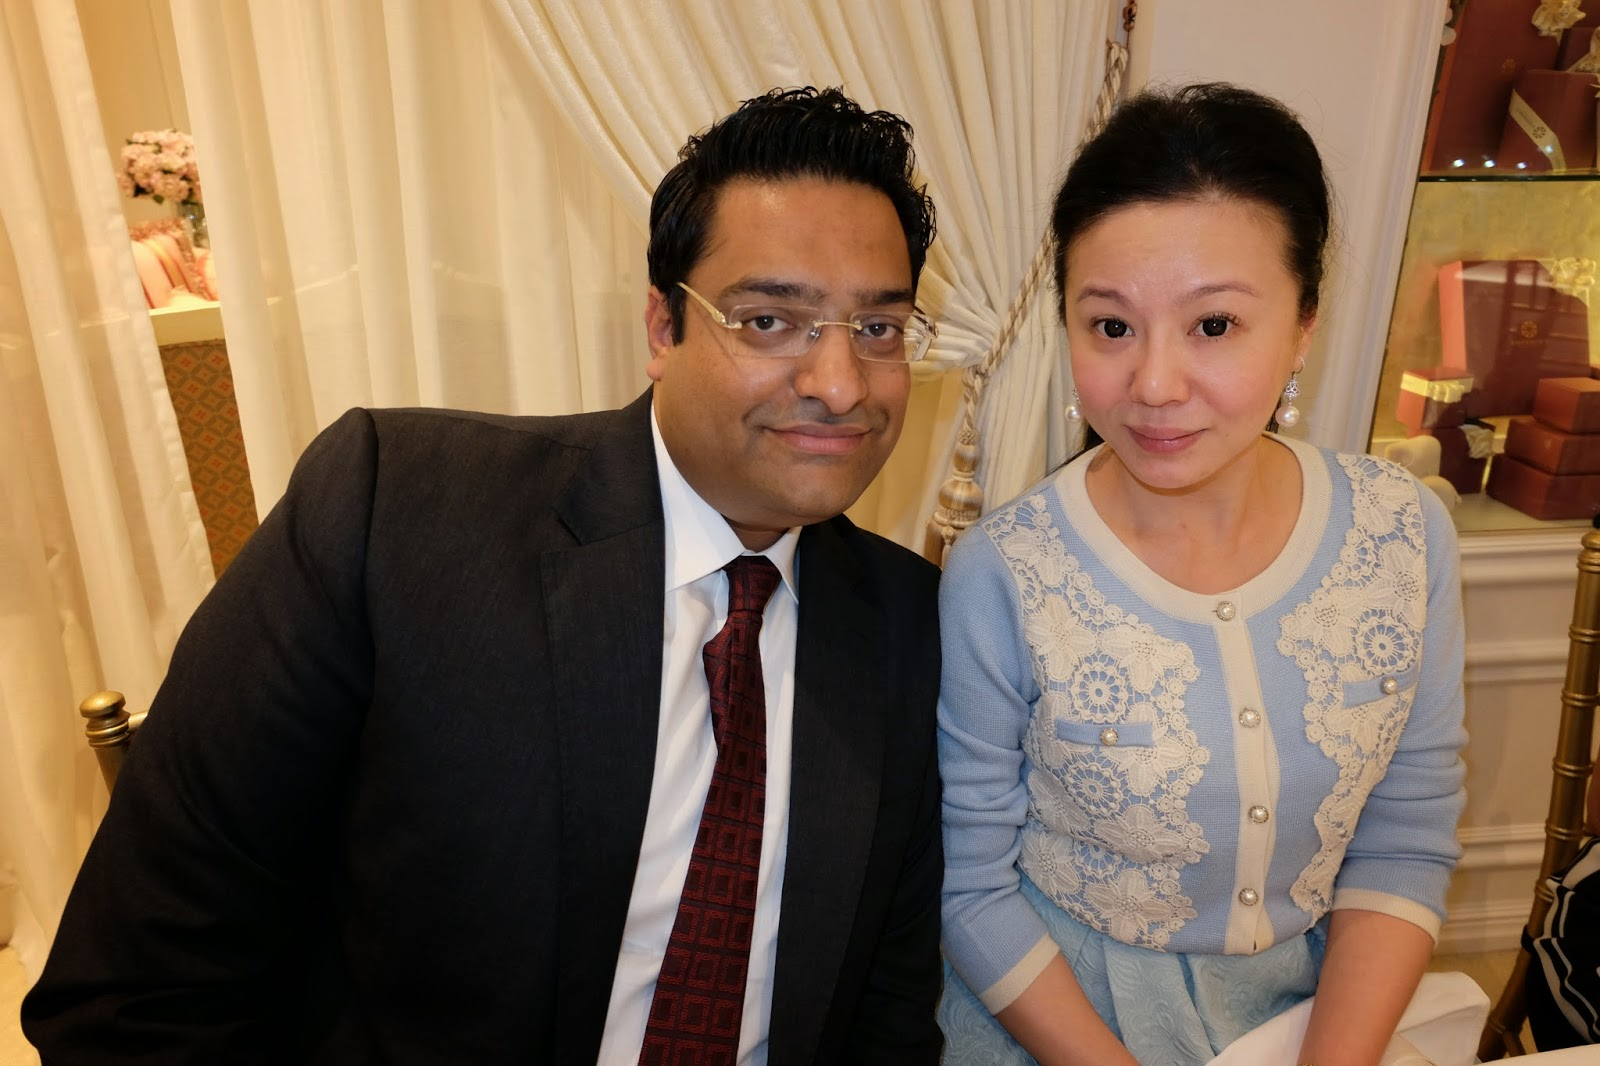 Nitin Goenka Wedding Nitin Goenka And Datin Joneser